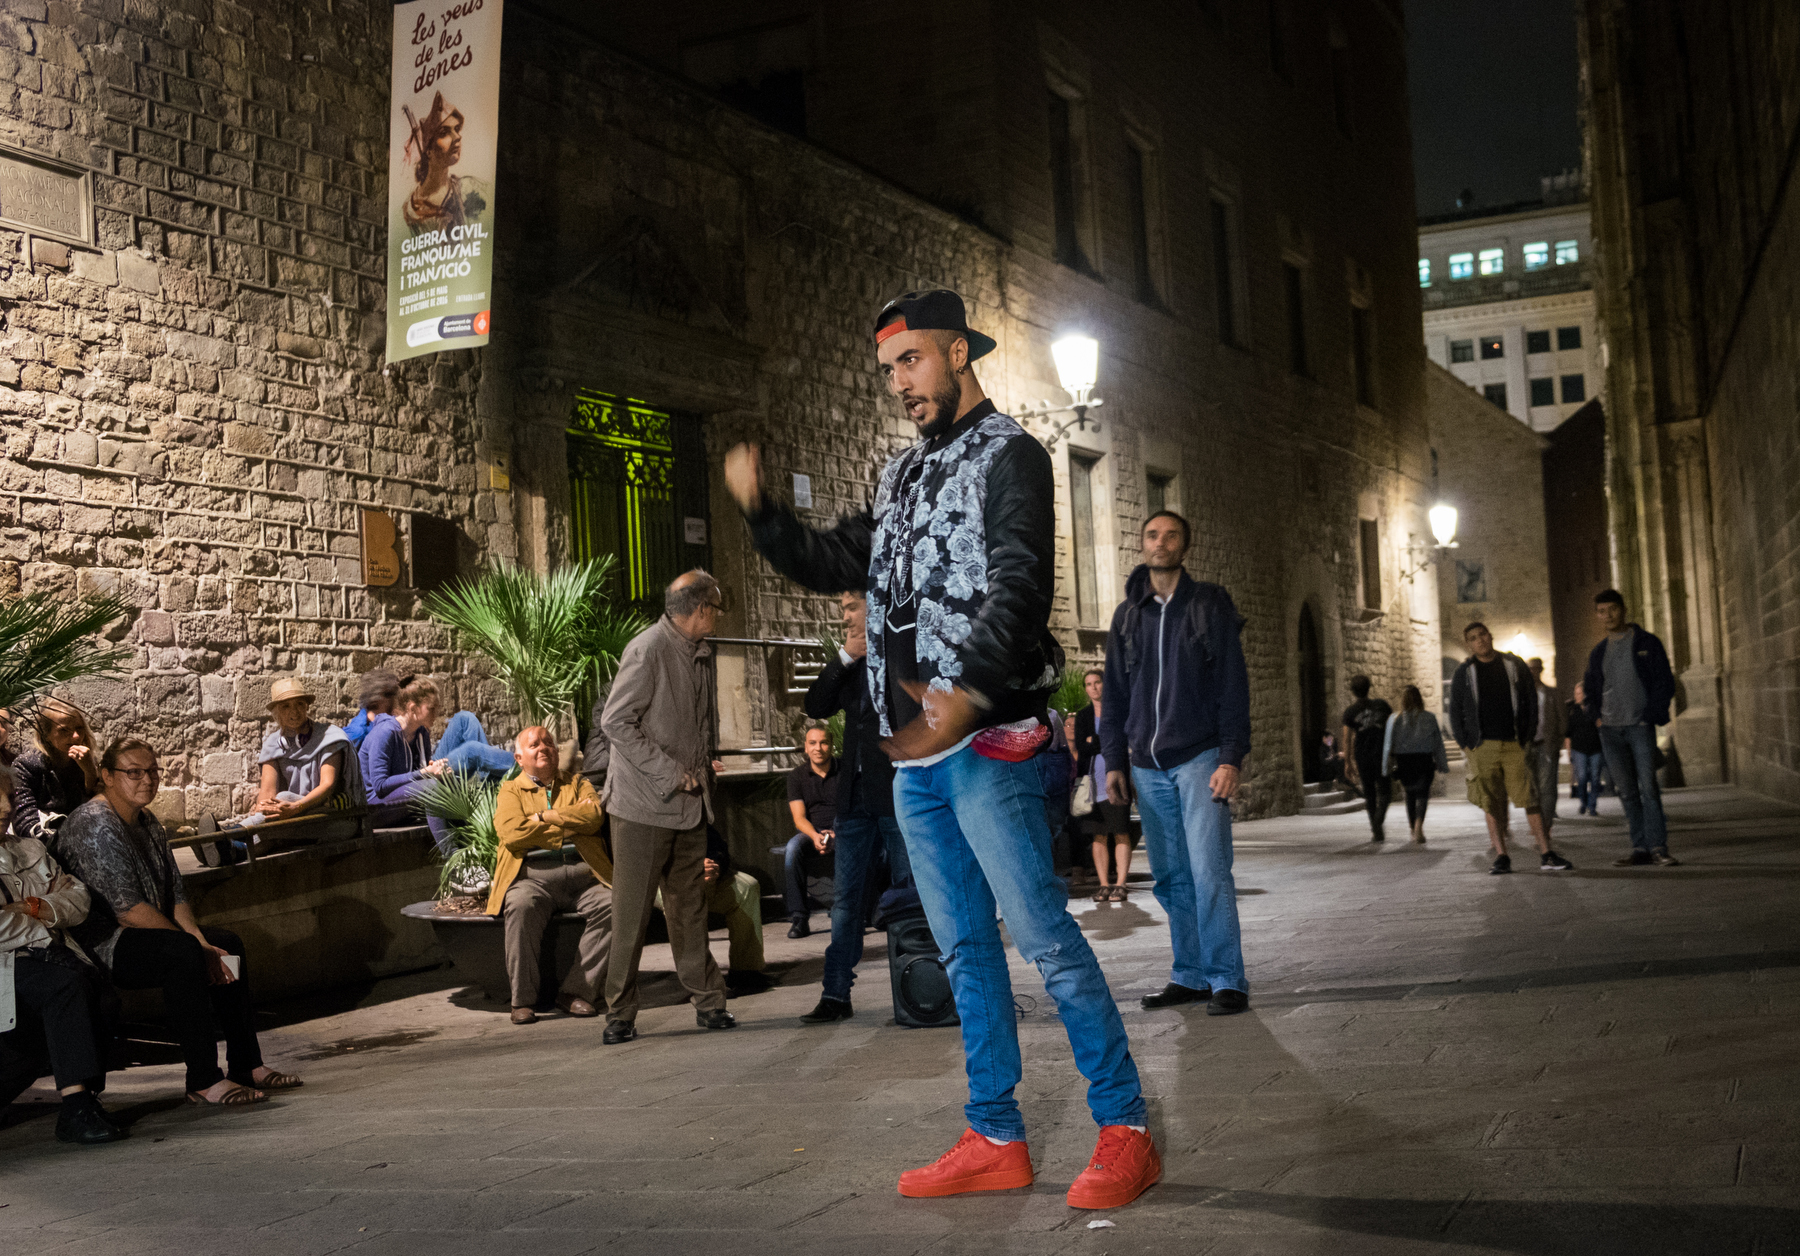 Late night opera in the streets of El Gotic (find a clip below)